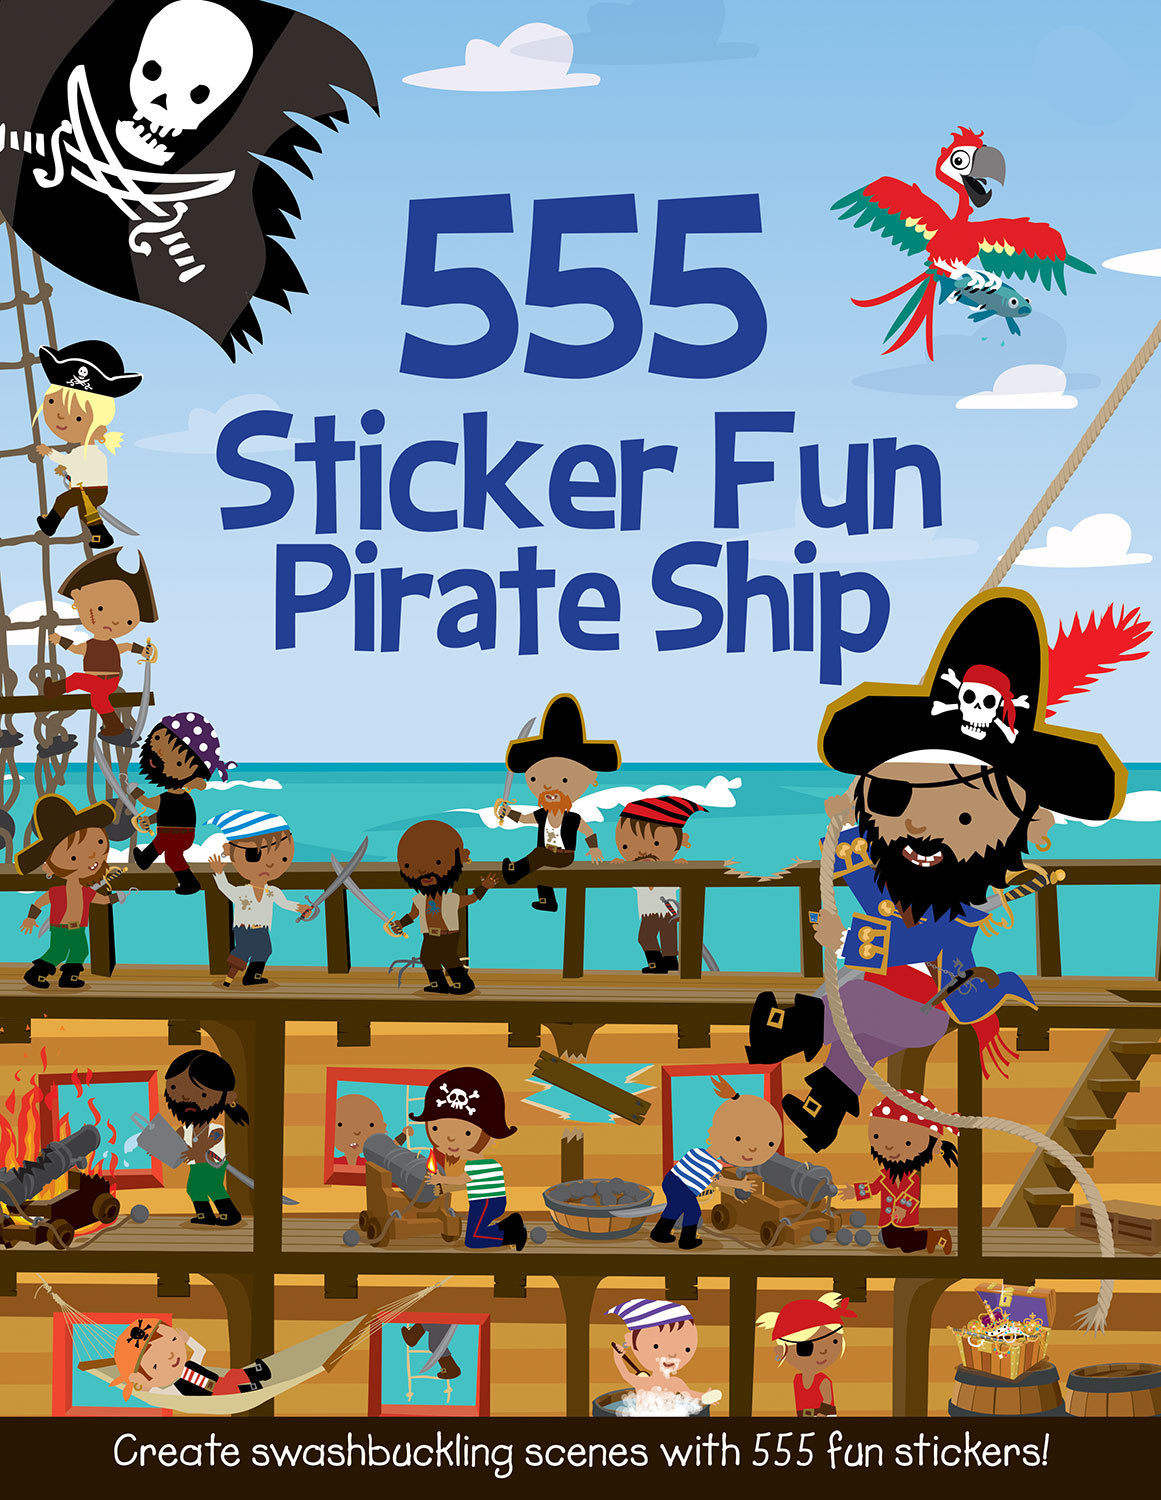 555 STICKER FUN PIRATE SHIP